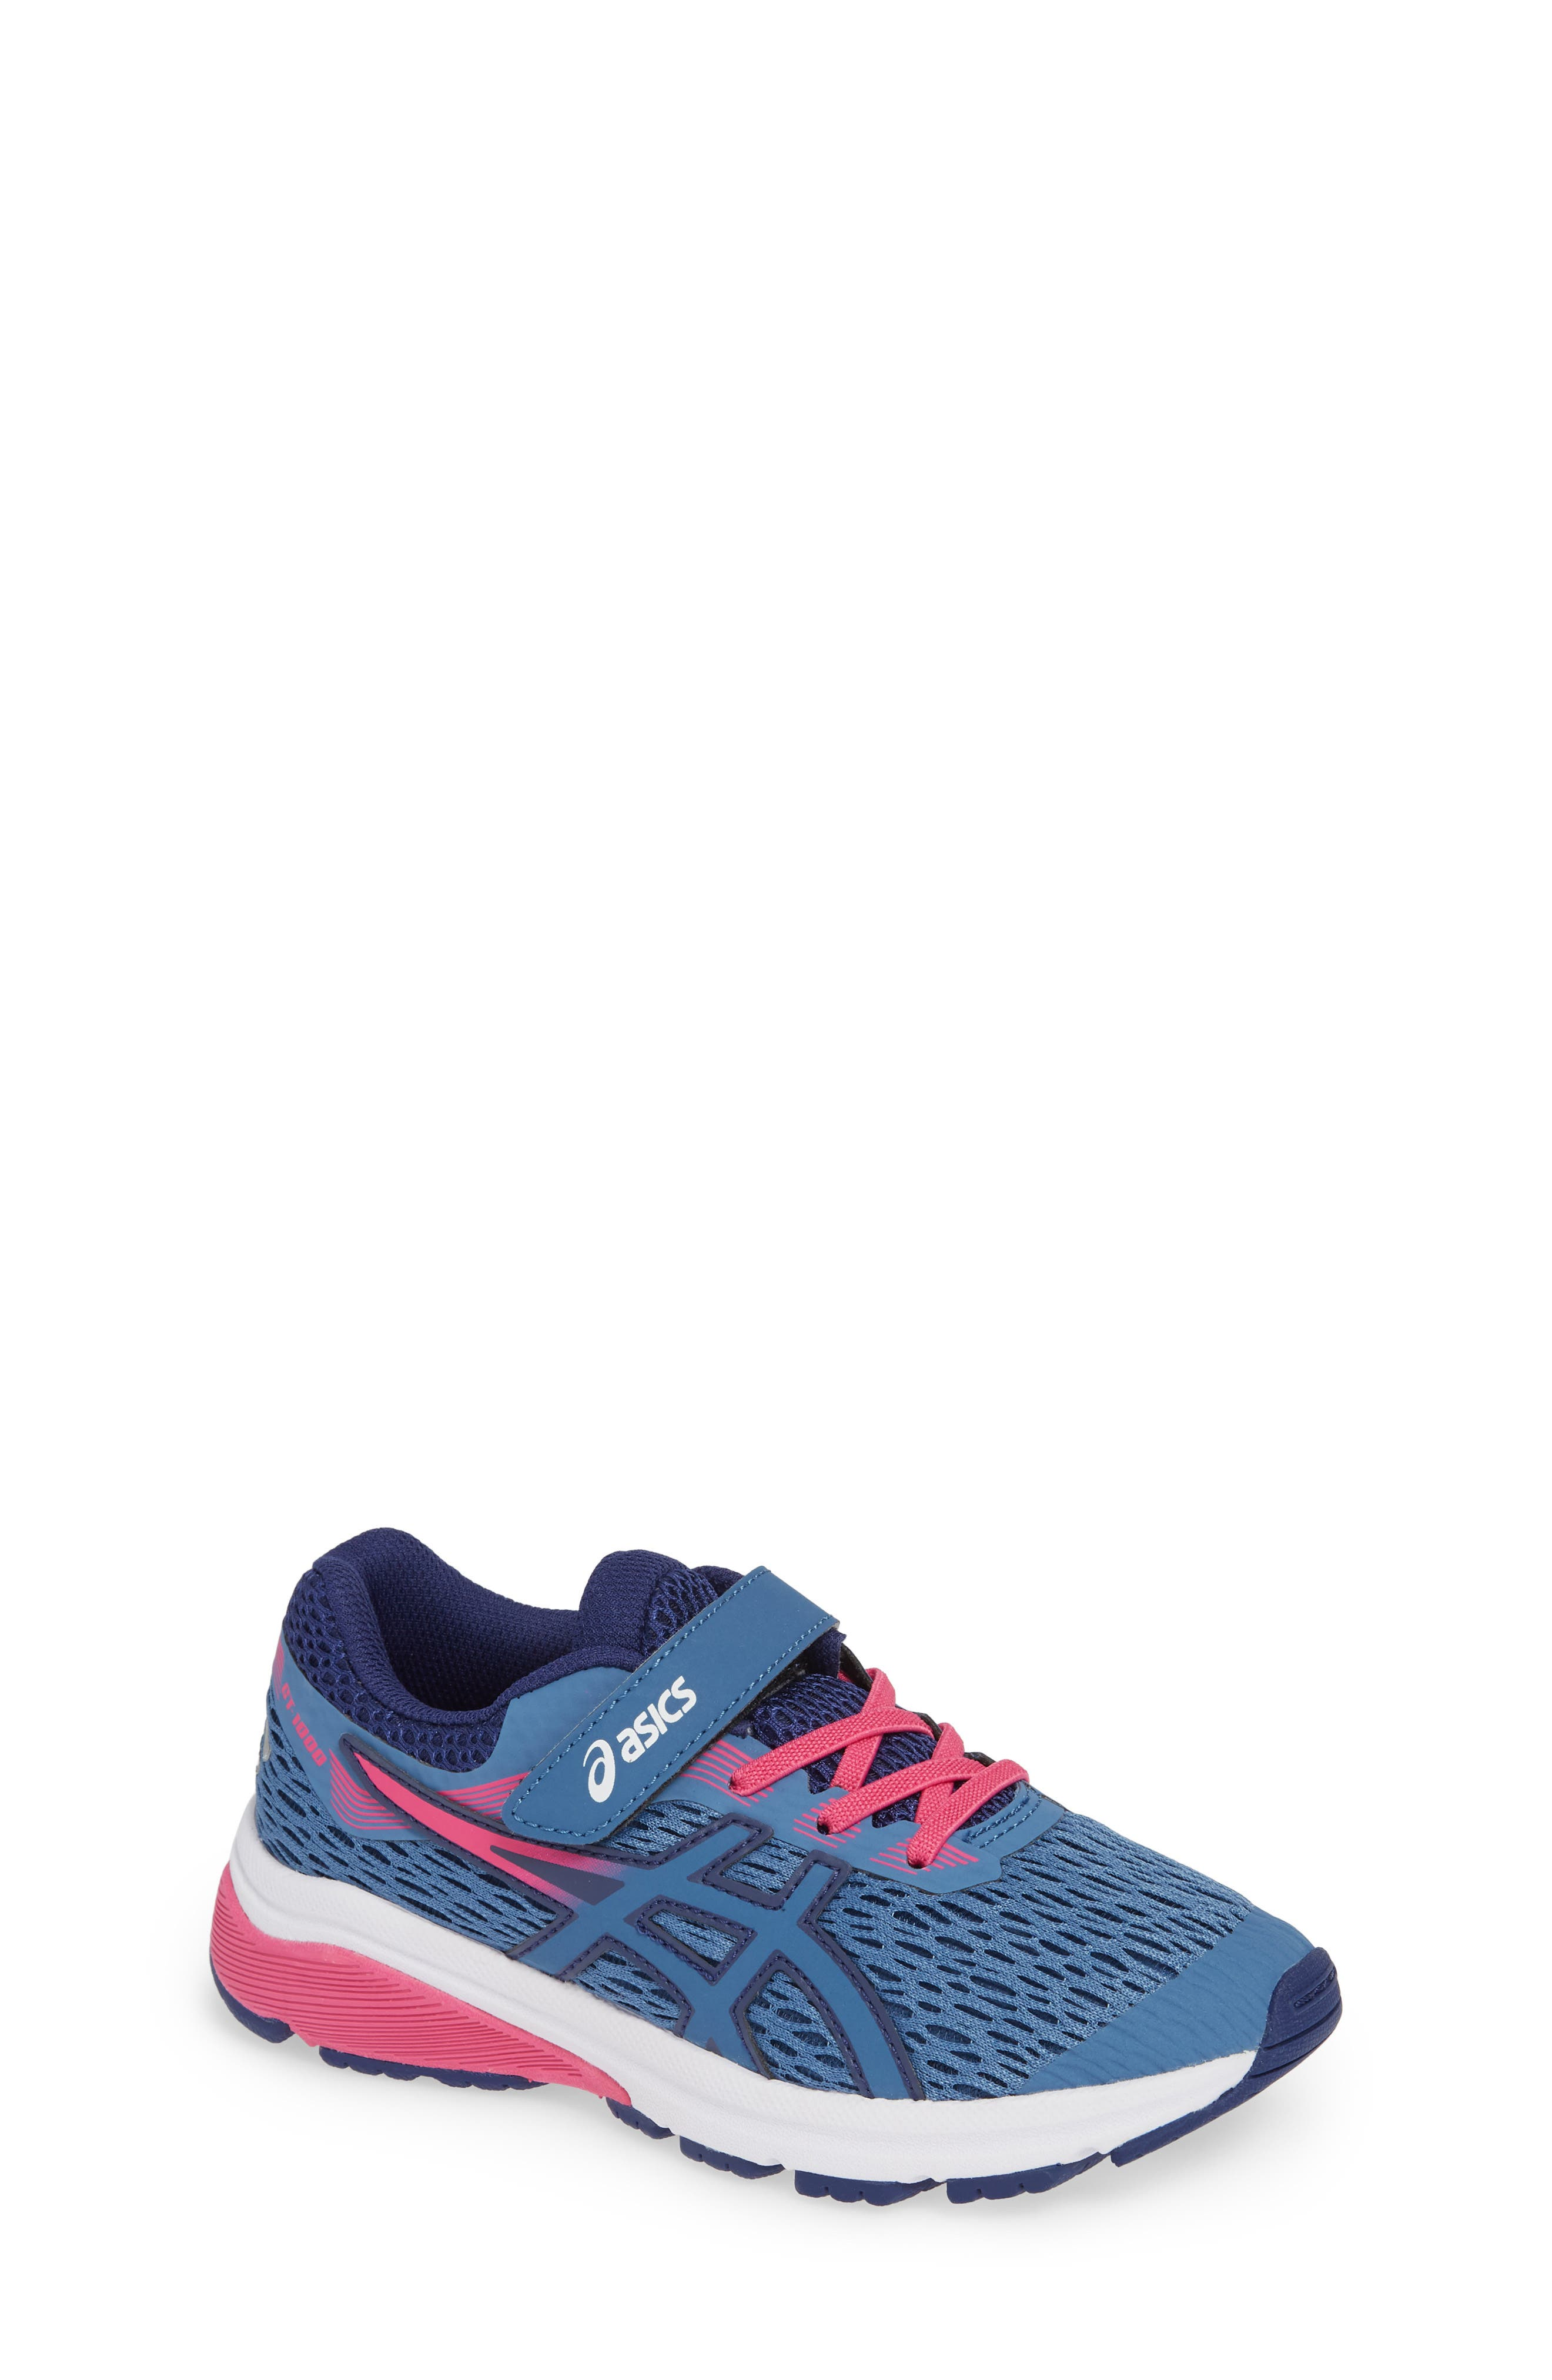 GT 1000 7 Running Shoe,                             Main thumbnail 1, color,                             AZURE/ FUCHSIA PURPLE